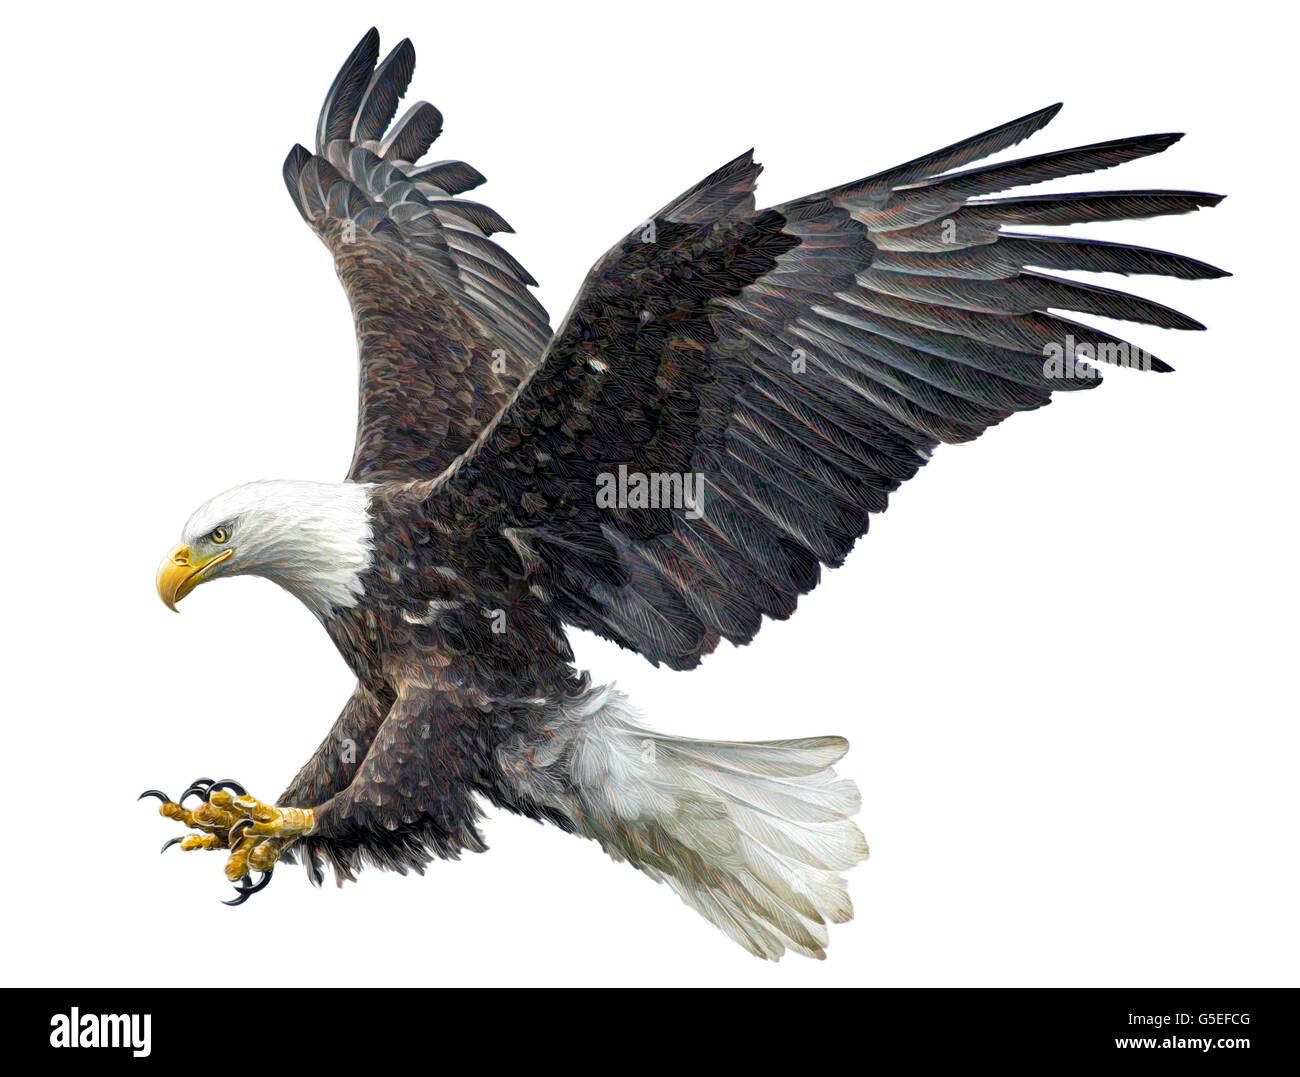 Bald eagle flying attack hand draw and paint color on white background illustration